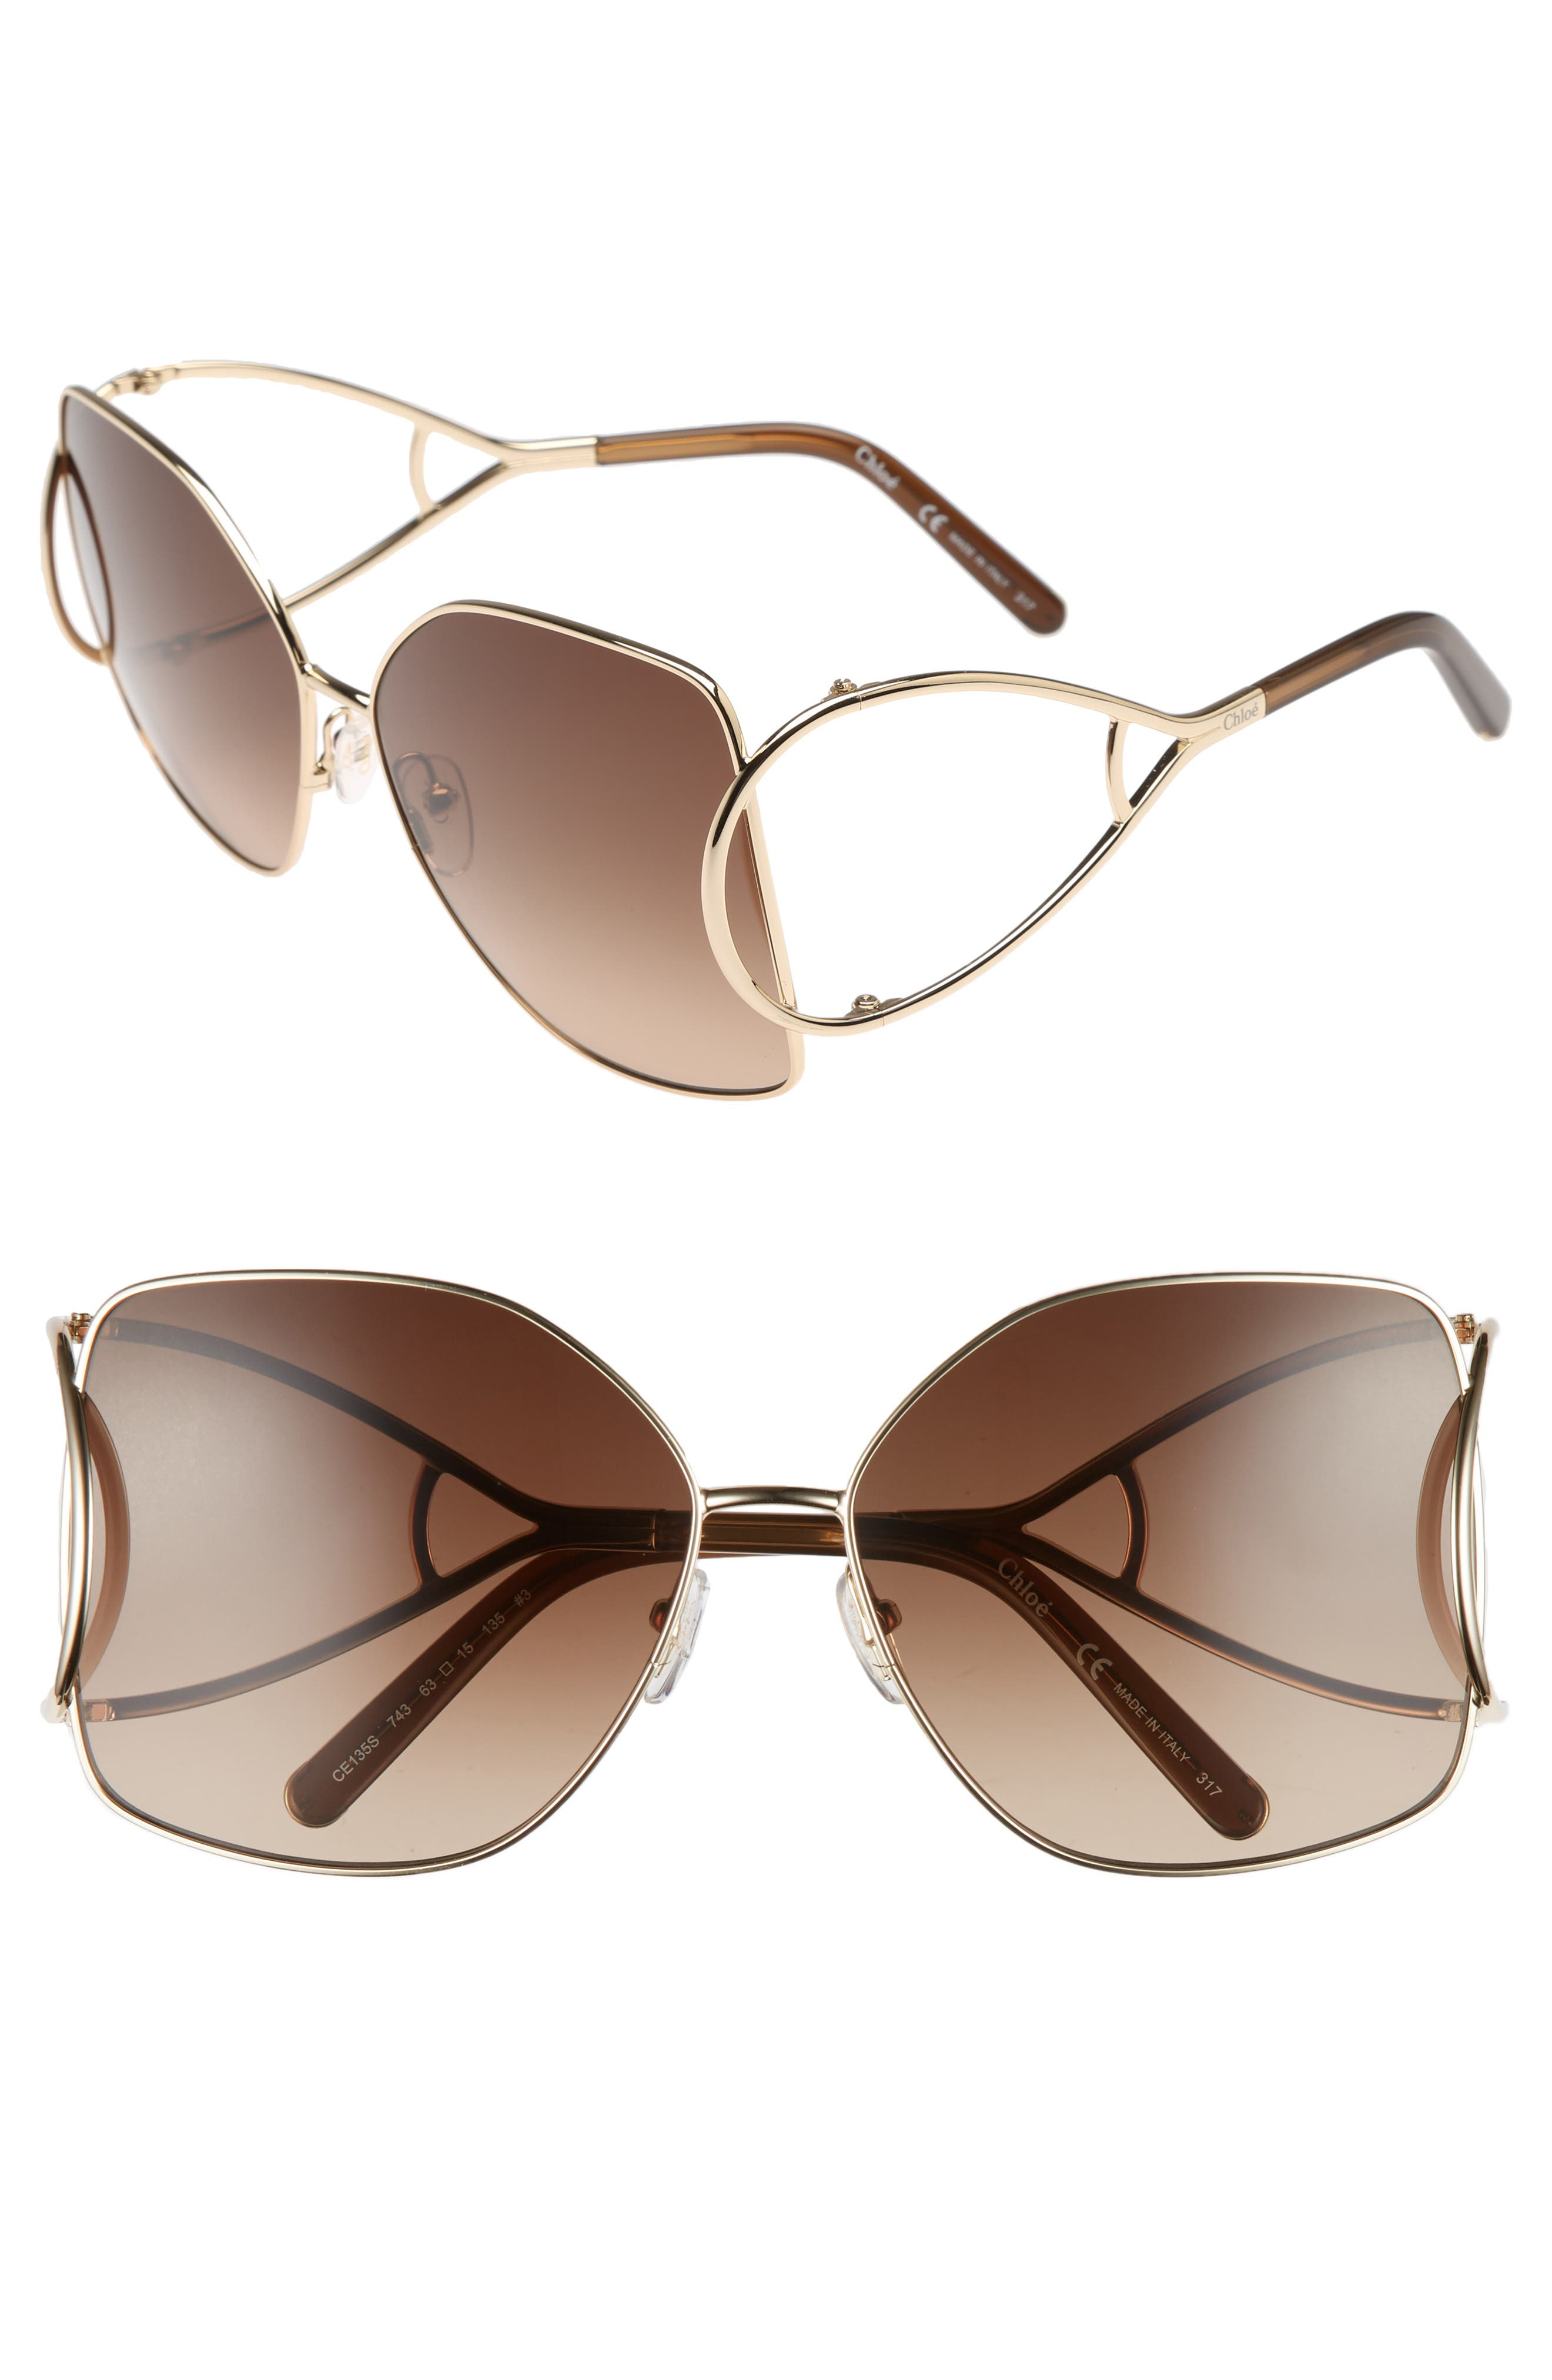 63mm Wrapover Frame Sunglasses,                         Main,                         color, Gold/ Brown